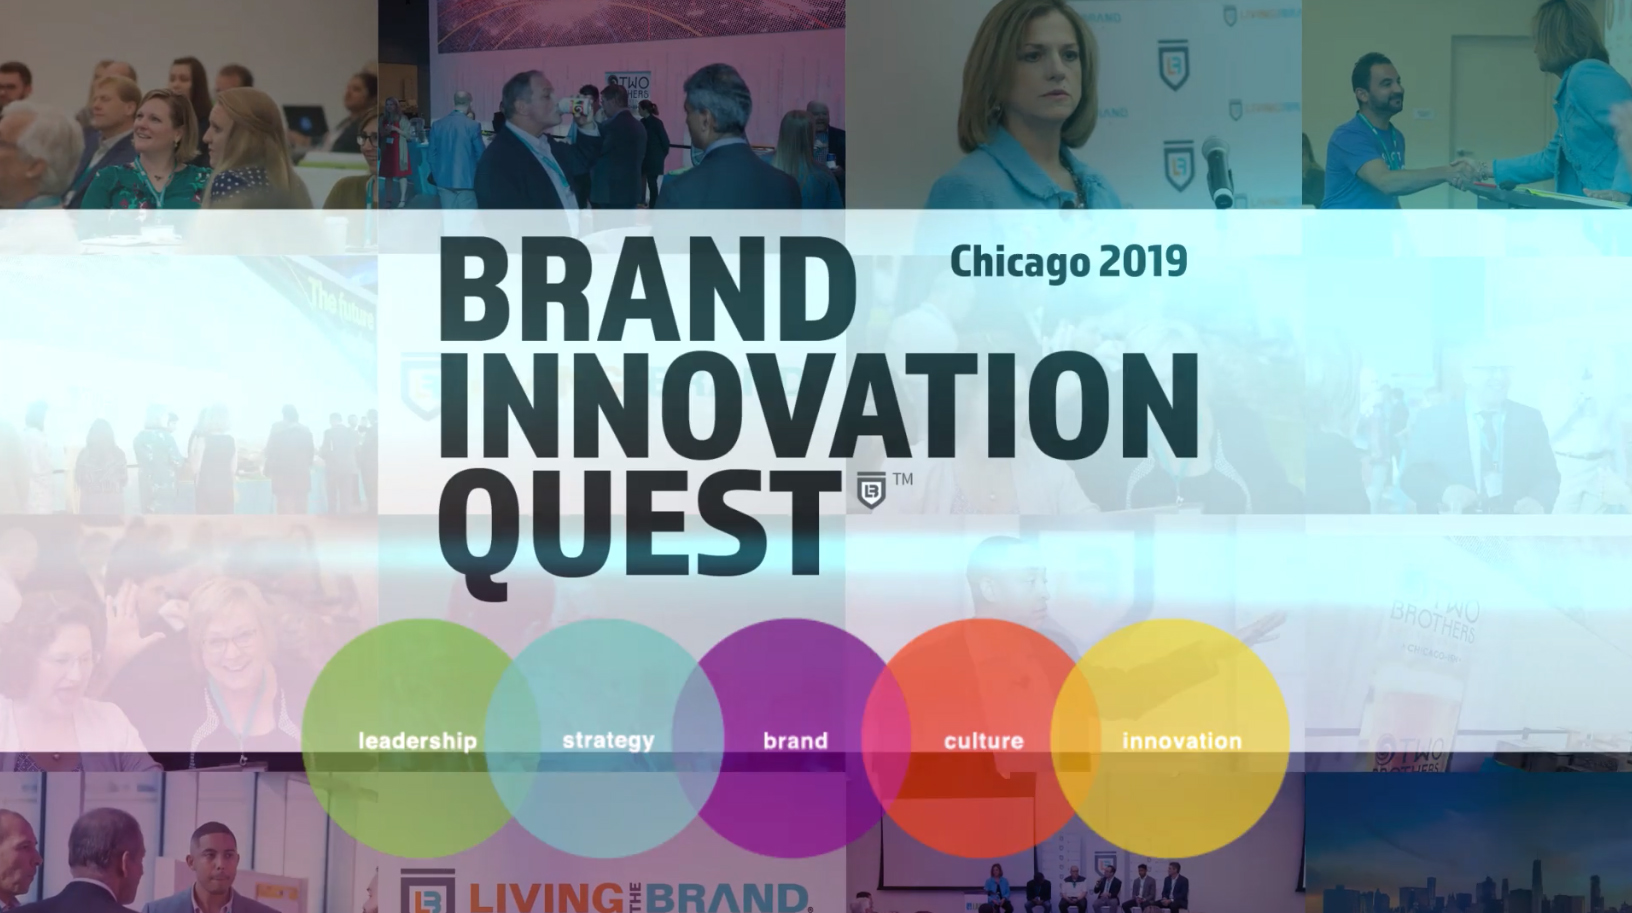 Brand Innovation Quest Chicago 2019